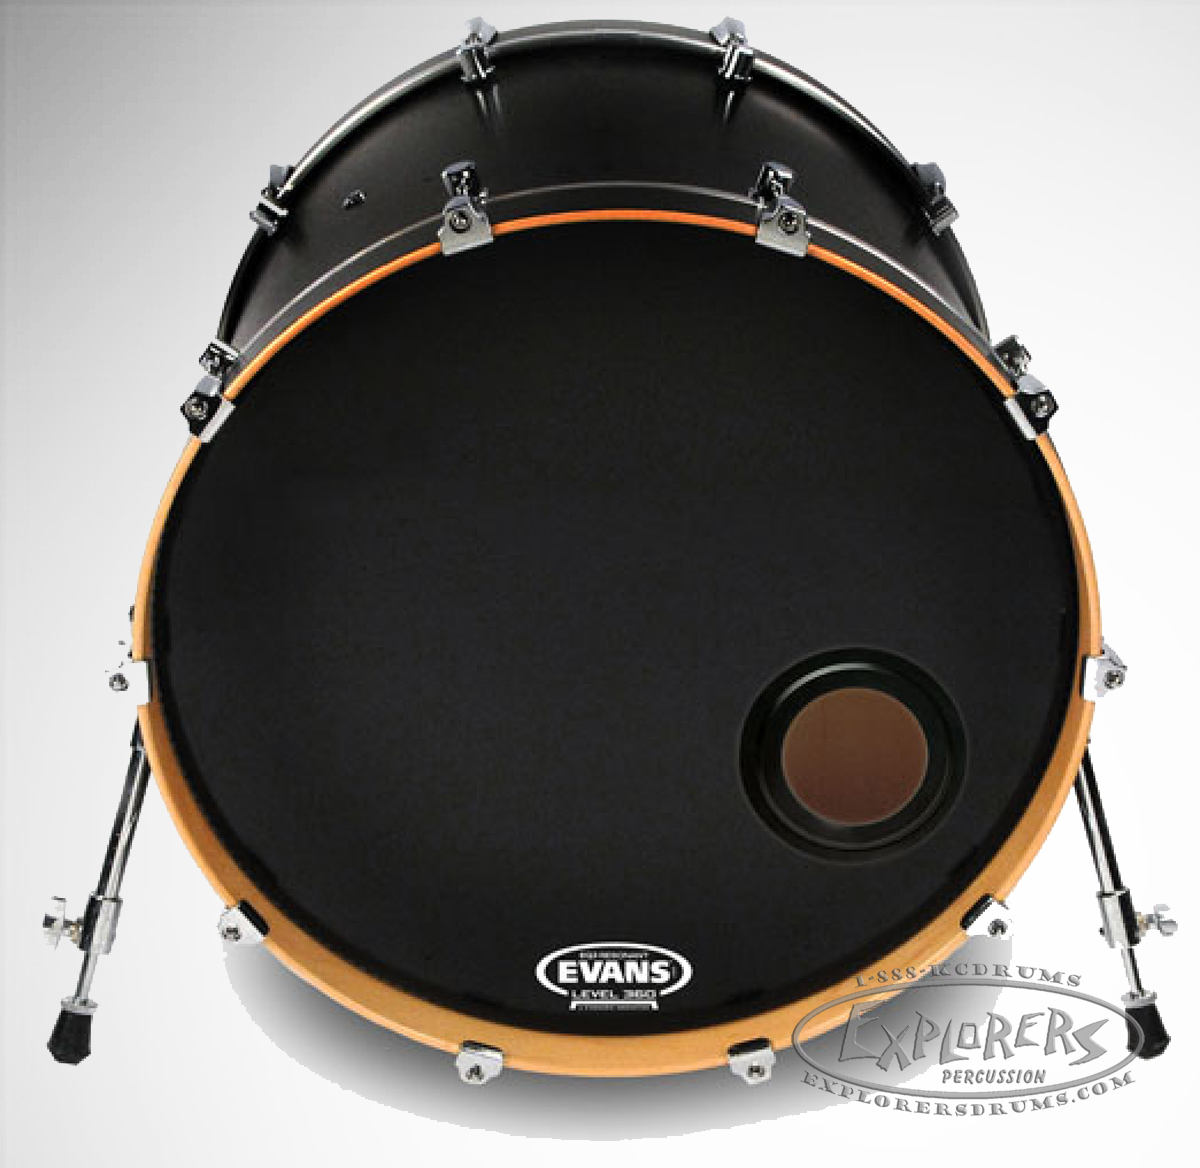 evans emad resonant frosted single ply bass drum head. Black Bedroom Furniture Sets. Home Design Ideas